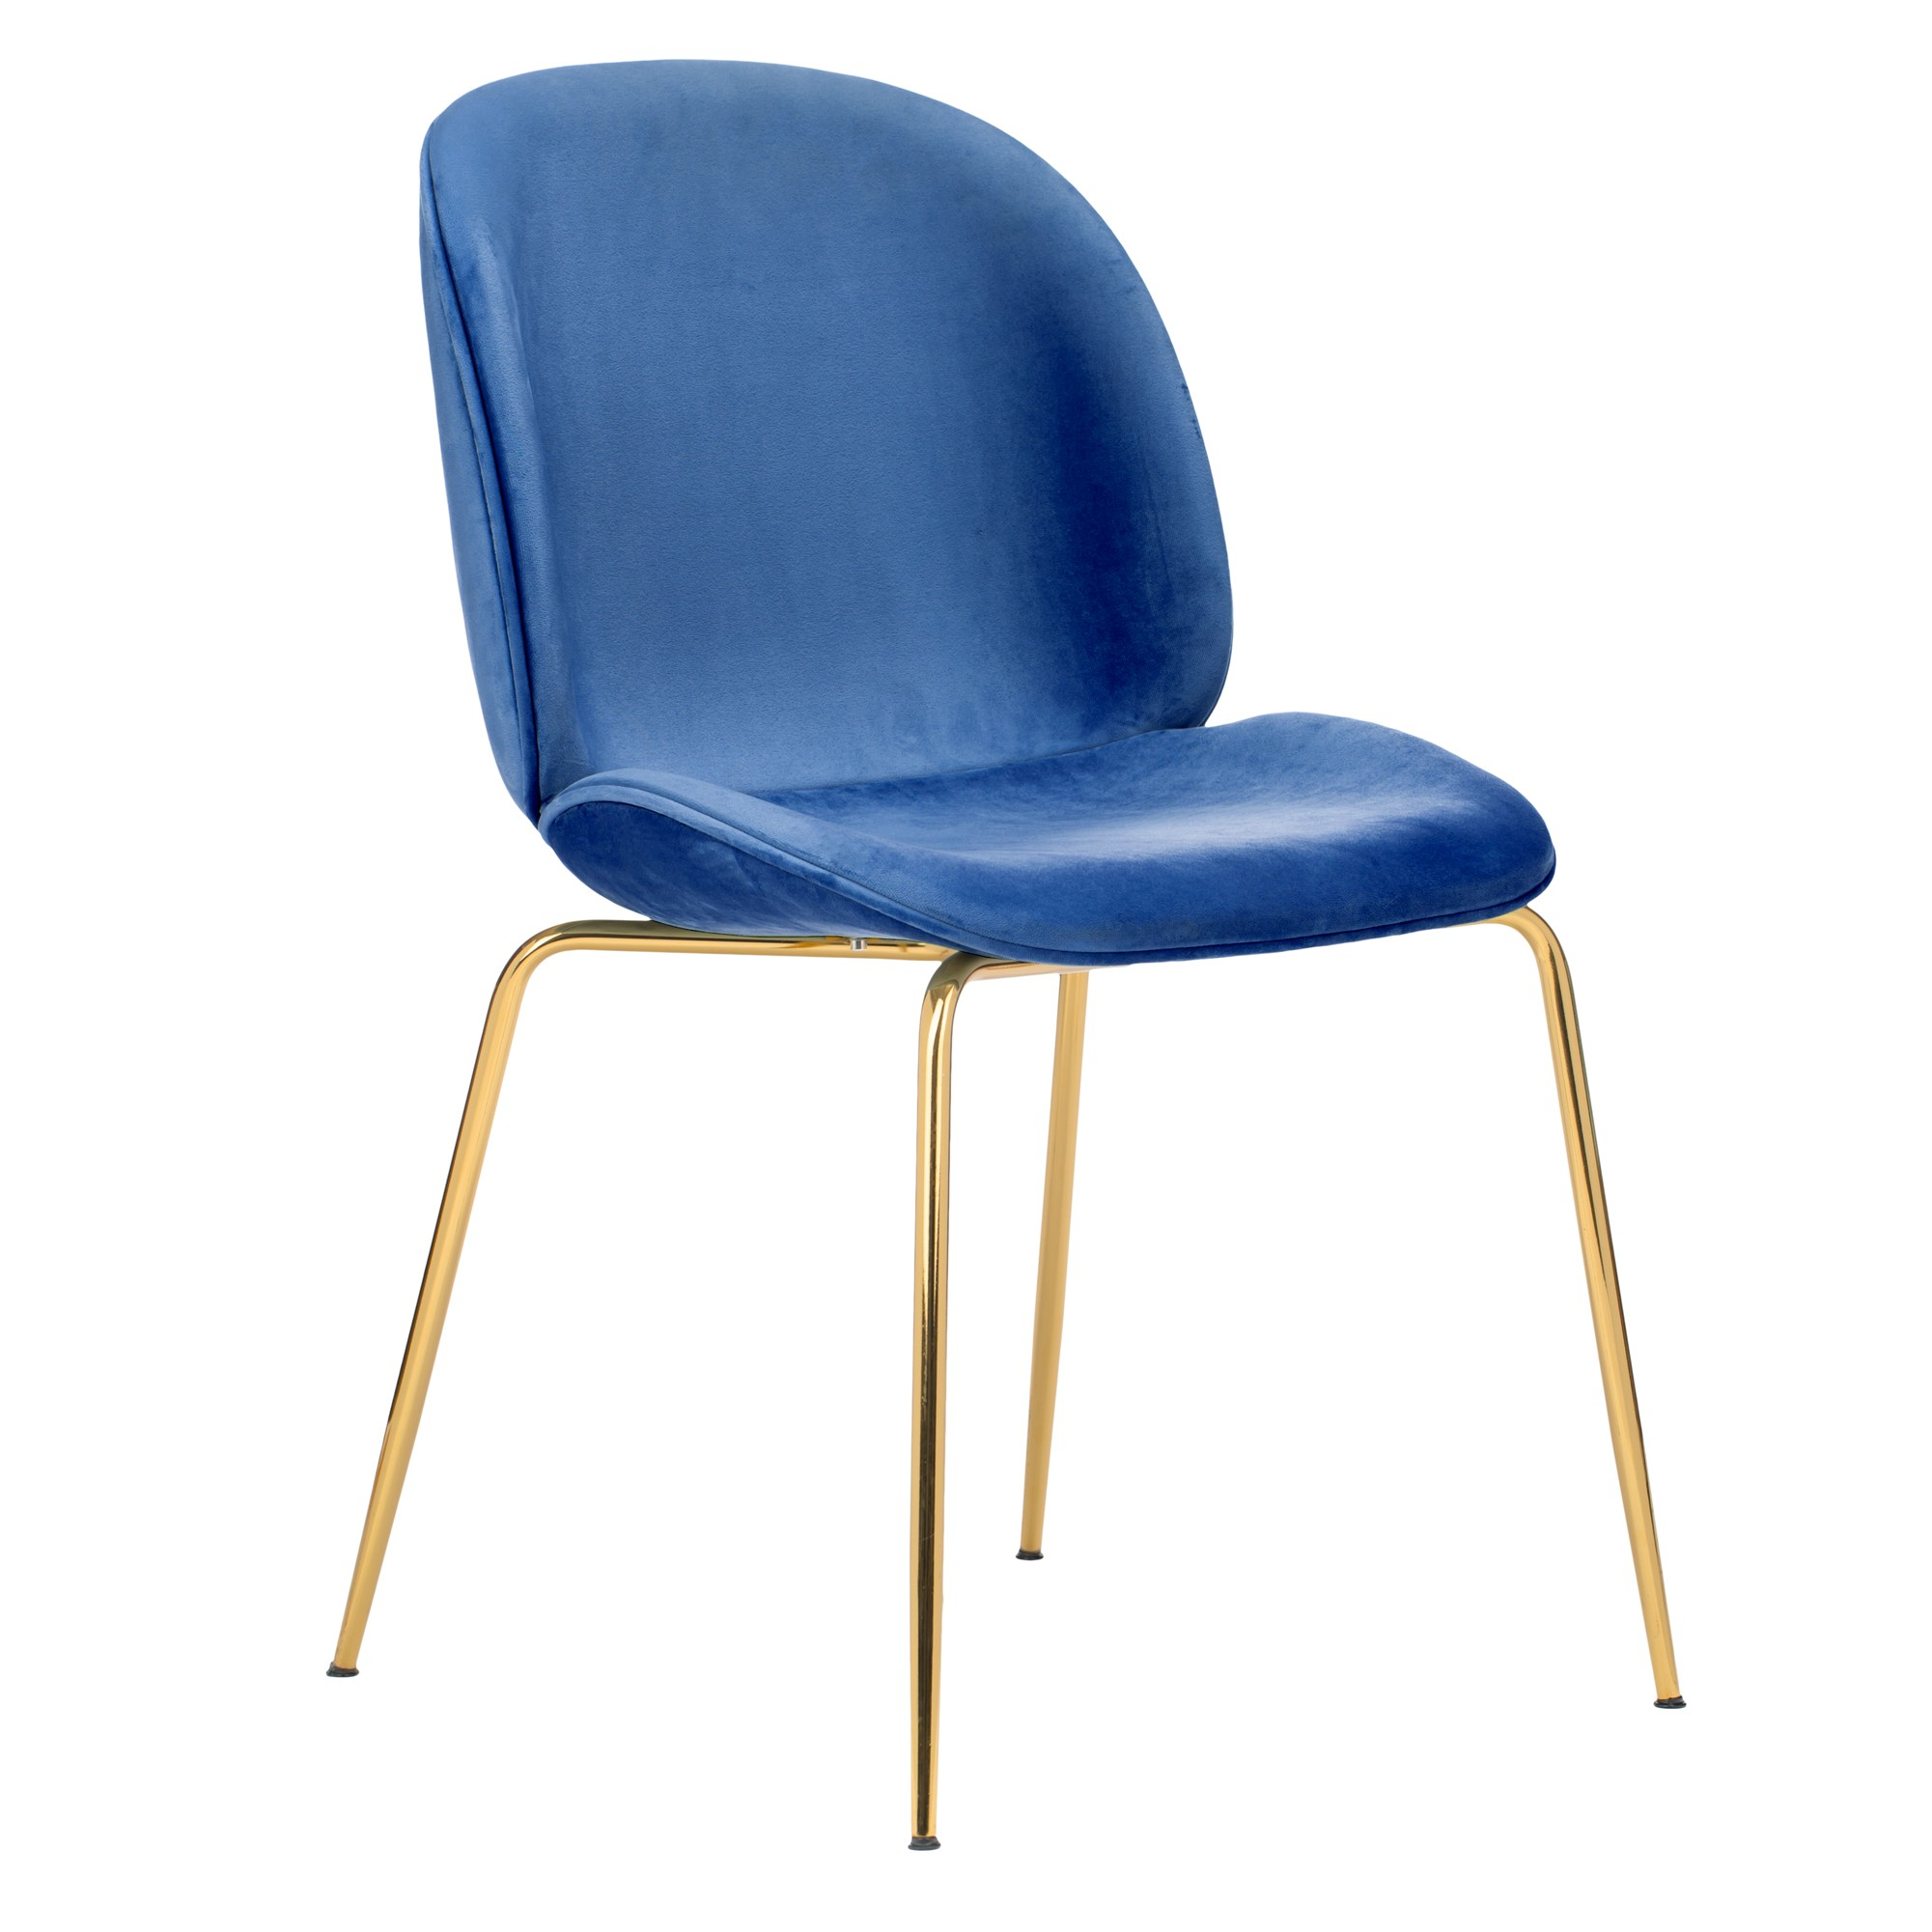 Velvet Upholstered Side Dining Accent Chair in Royal Blue with Polished Gold Chrome Legs